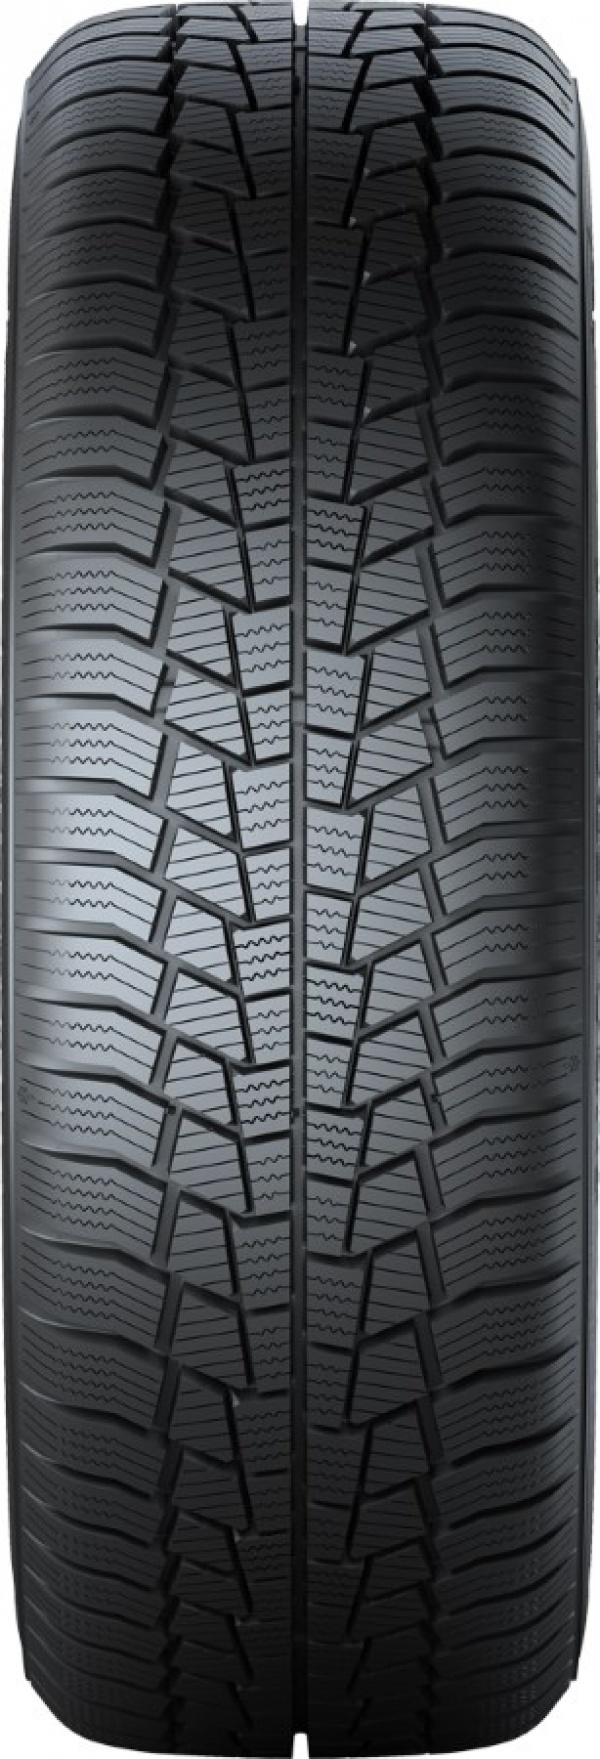 Gislaved Euro Frost 6 205/60 R16 96H  не шип